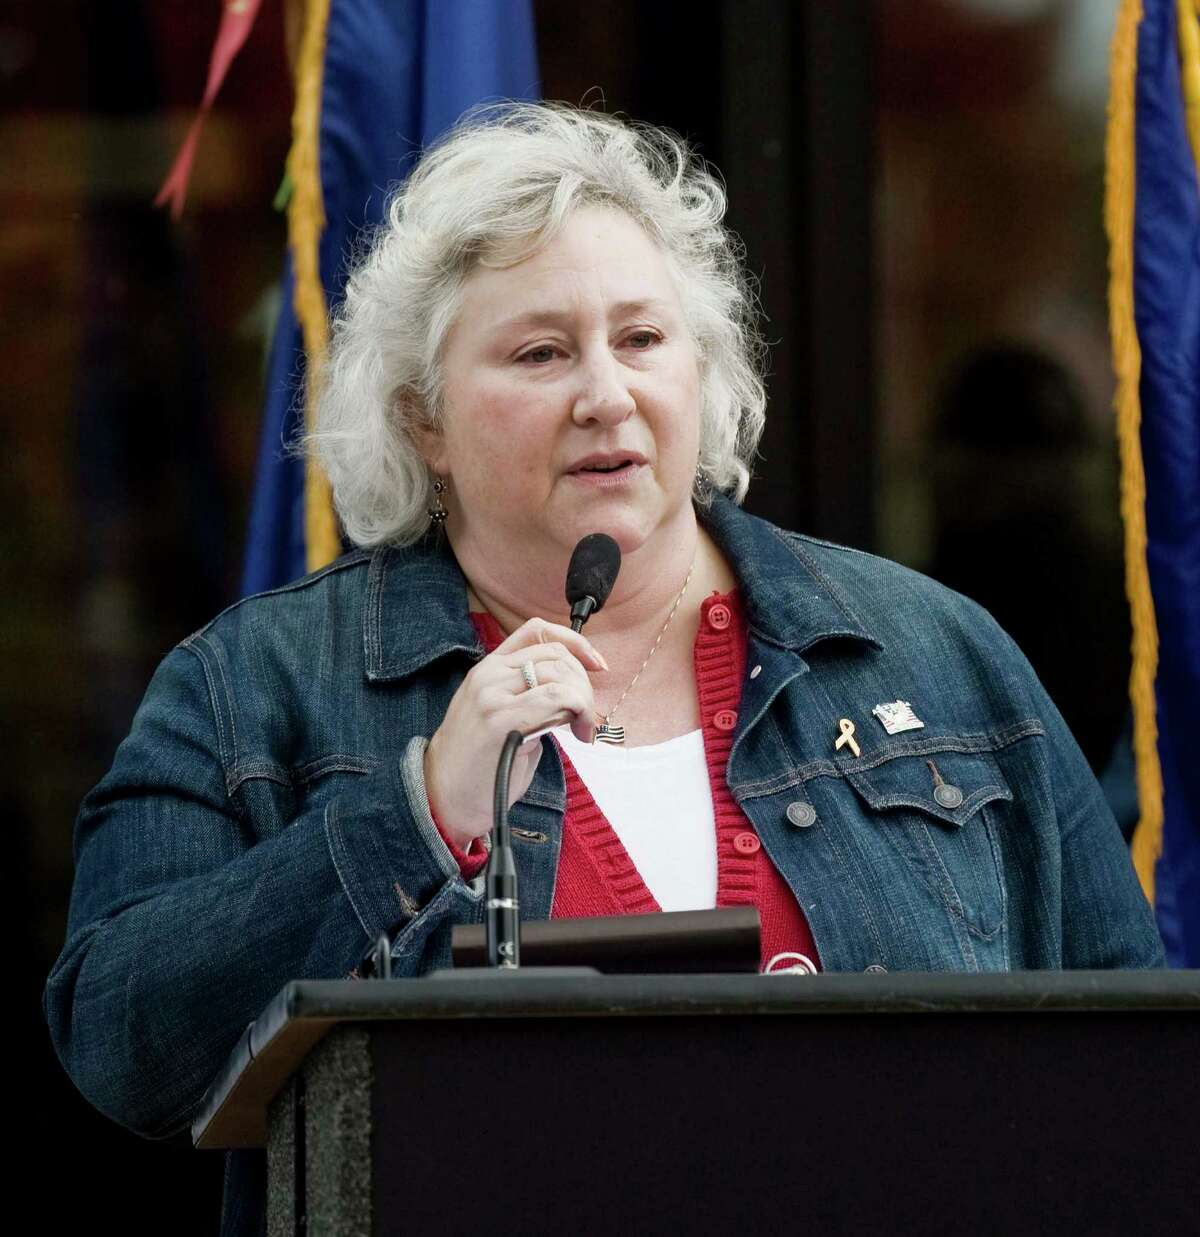 Mary Teicholz, founder and organizer of the Walk of Honor, speaks to the gathering at the Danbury War Memorial for the eighth annual walk which pays tribute to our country's veterans both past and present. Sunday, Oct. 18, 2015